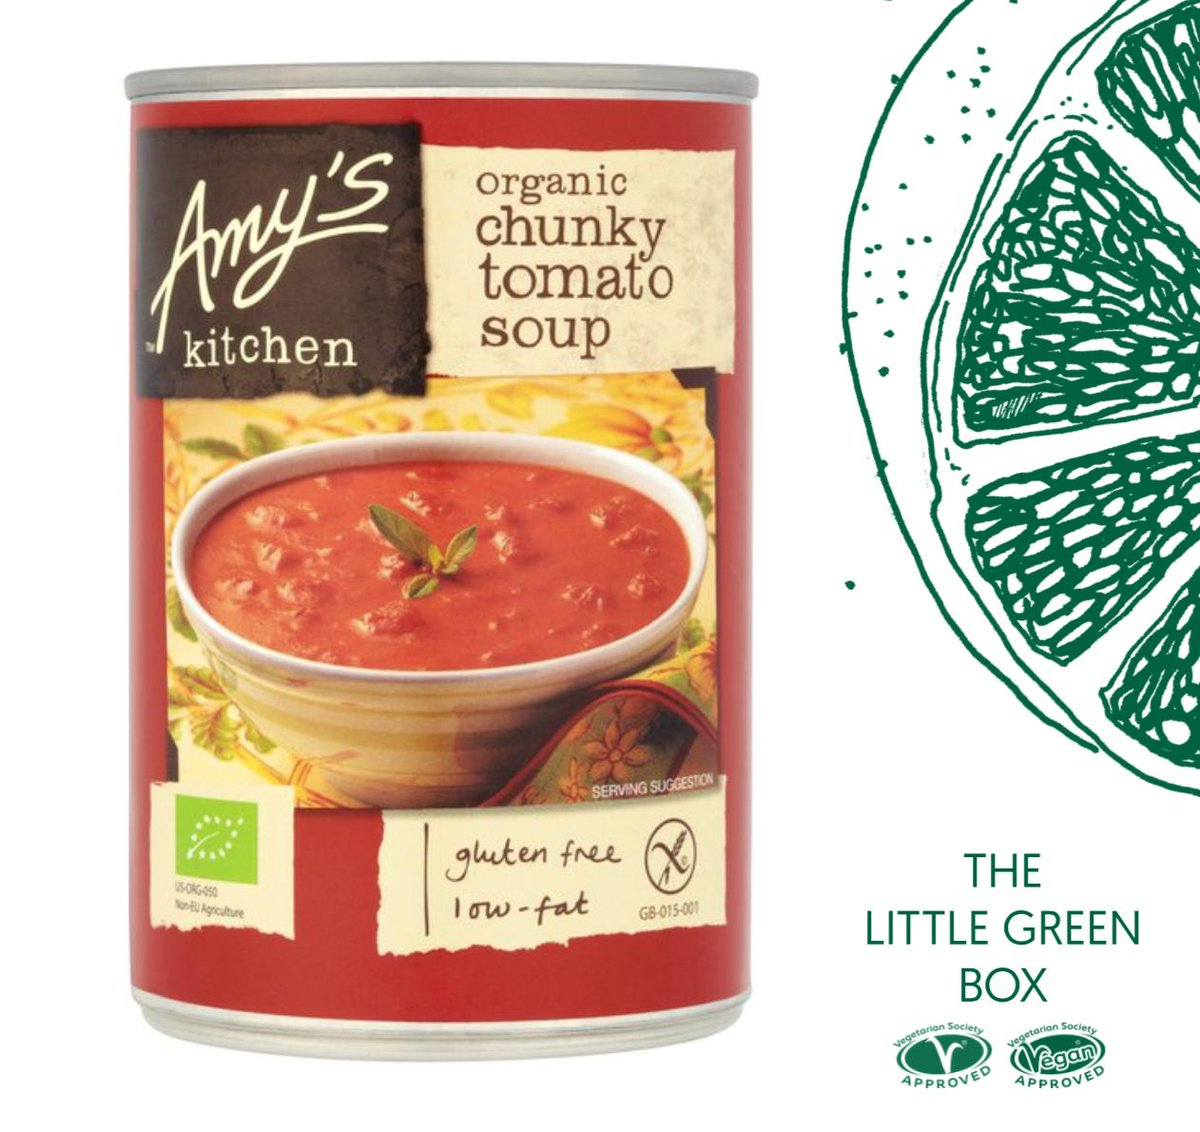 Our #LittleGreenBox is packed with tasty treats displaying our veggie and vegan trademarks. With only weeks to go until the first #FreshersFair here's a sneak peek of whats inside. First up @AmysKitchen chunky tomato soup. A perfect post-lecture snack! 🍅#EatToBeatClimateChange